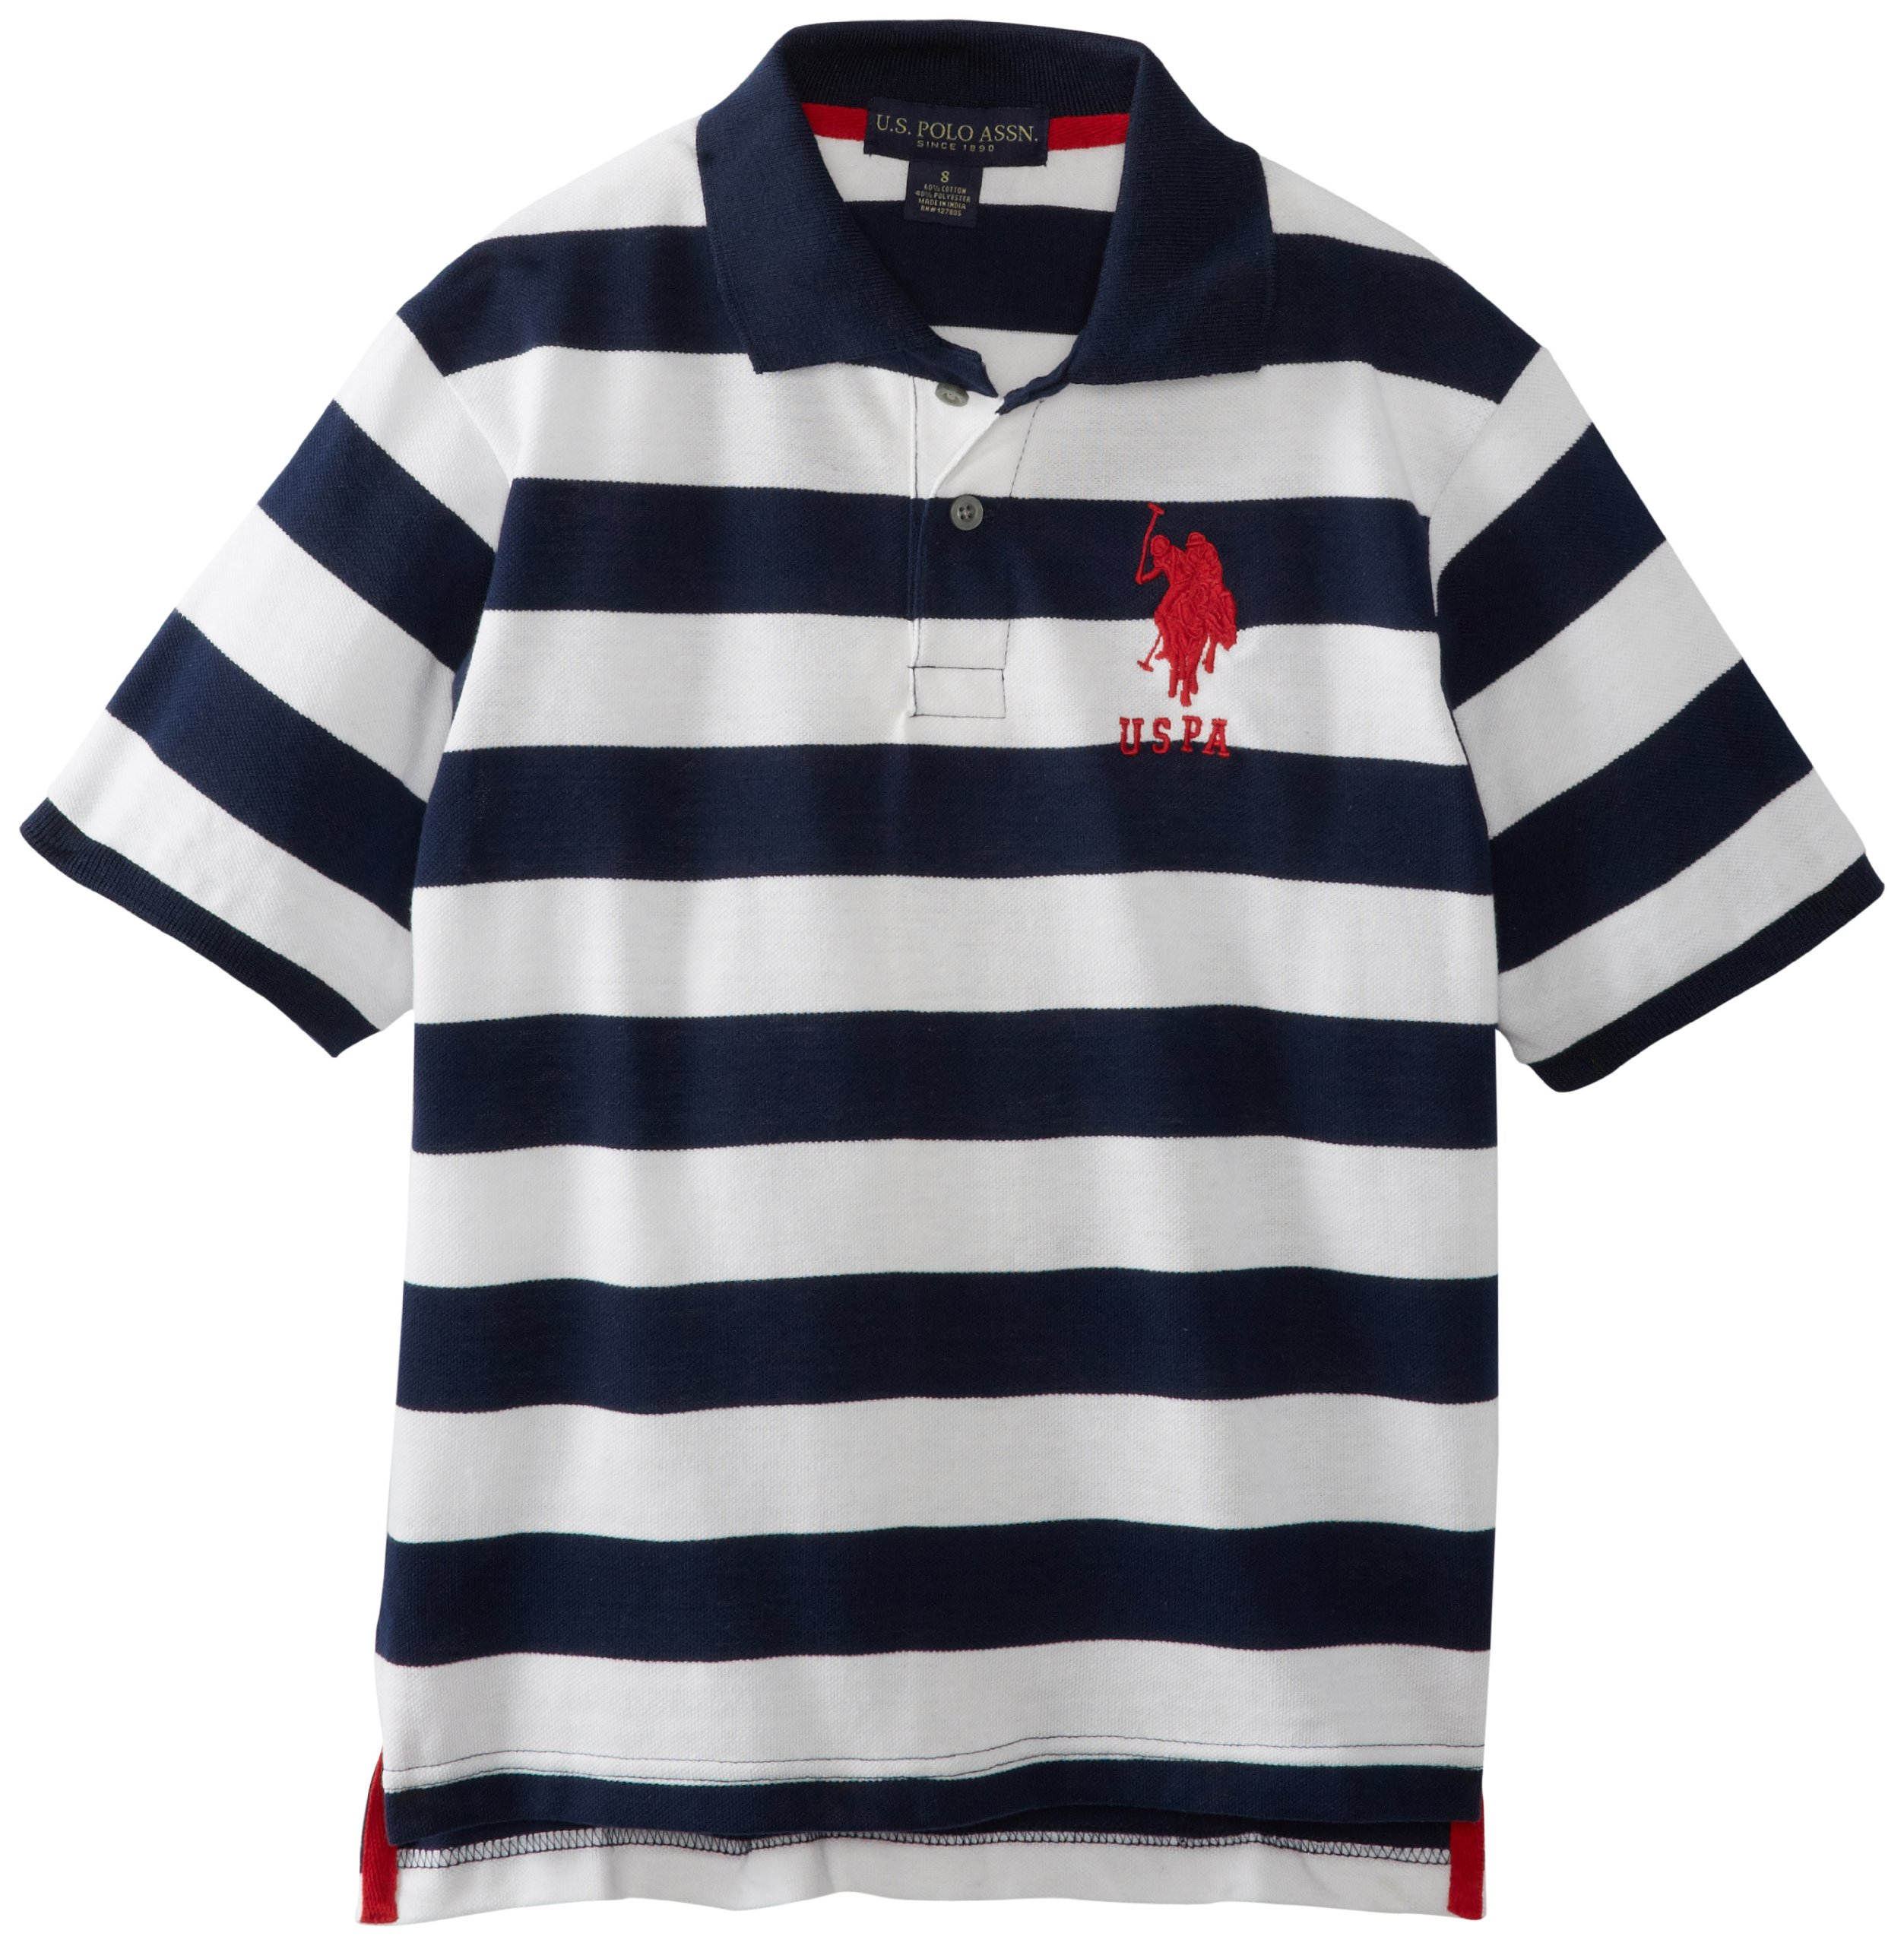 U.S. Polo Assn. Big Boys' Yarn Dyed Striped Polo, Classic Navy, 10/12